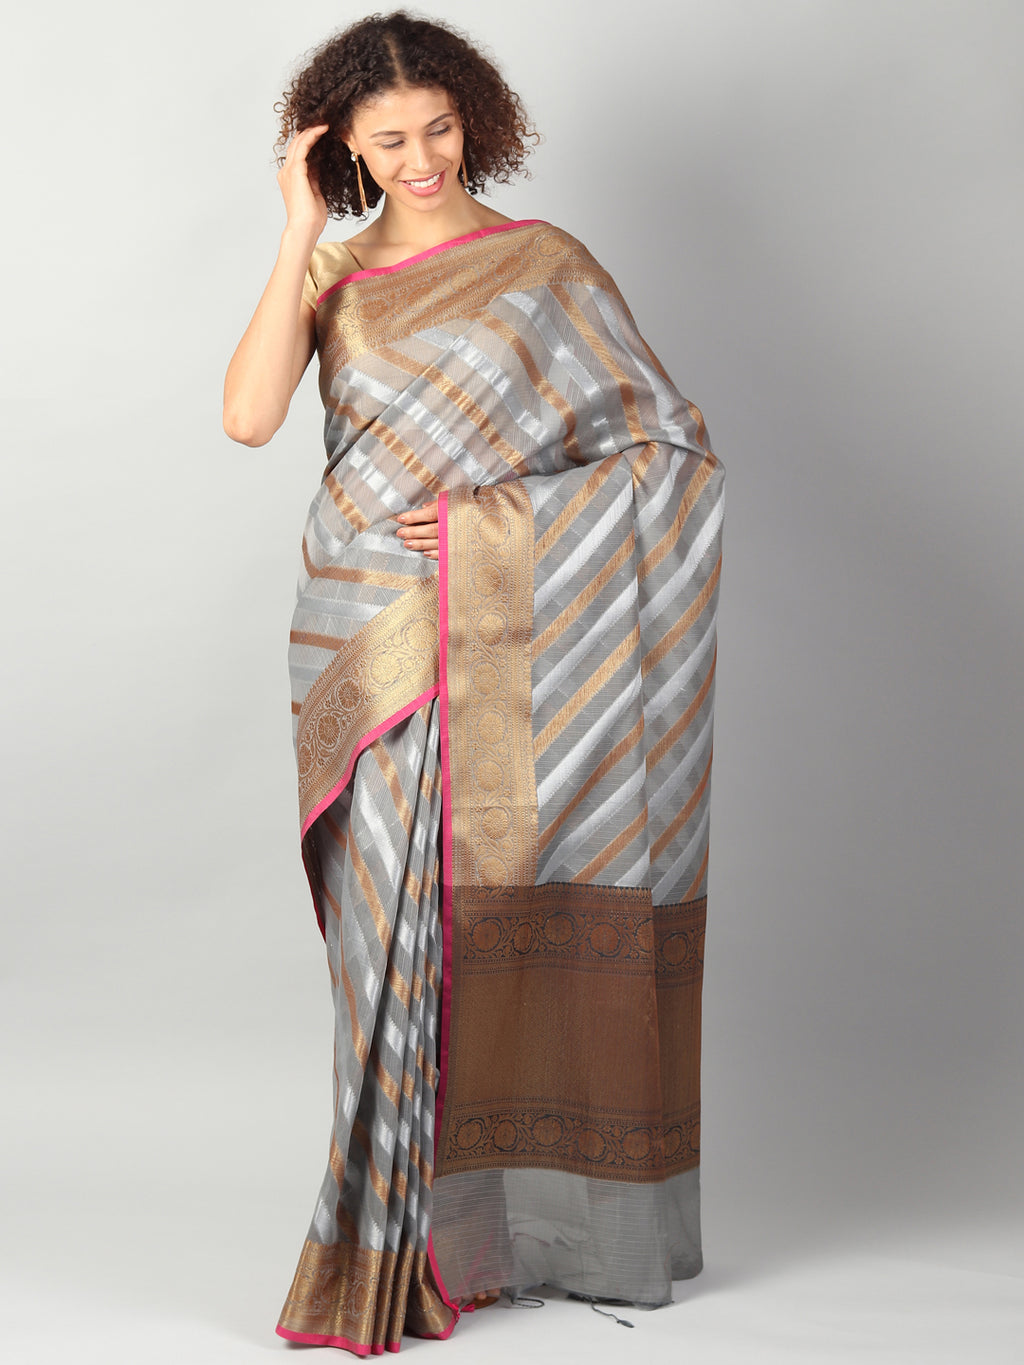 Kota saree with diagonal striped of gray & gold allover and zari border